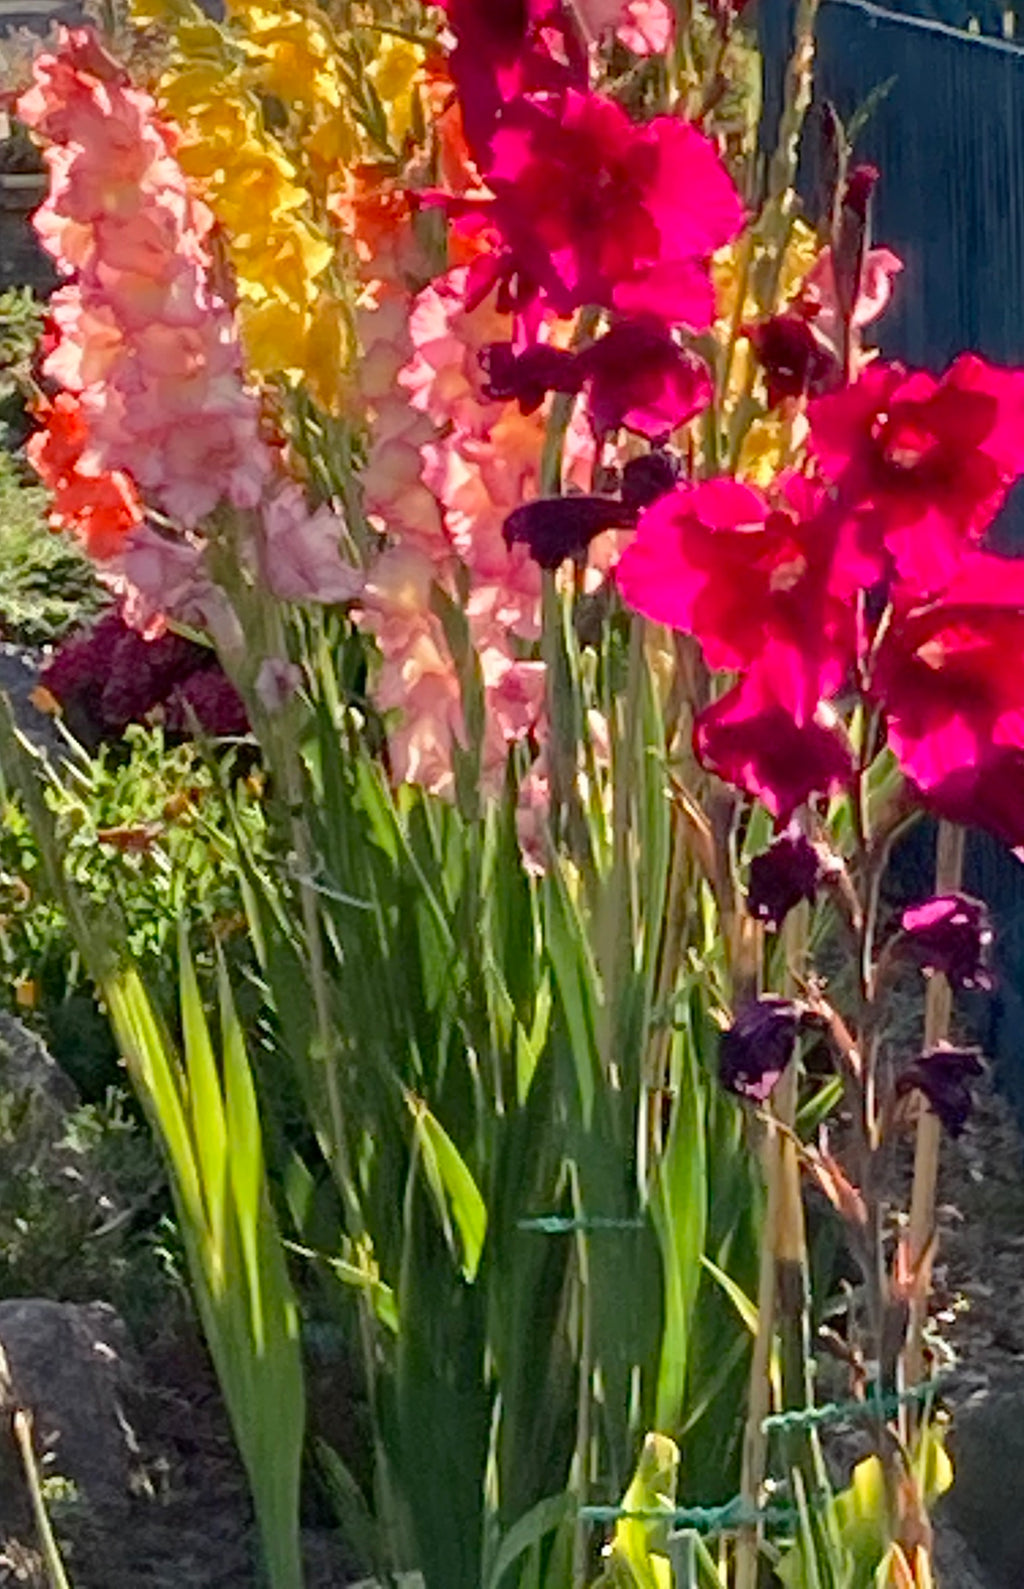 10 x Gladioli Corms Mixed Colours (Free UK Postage)